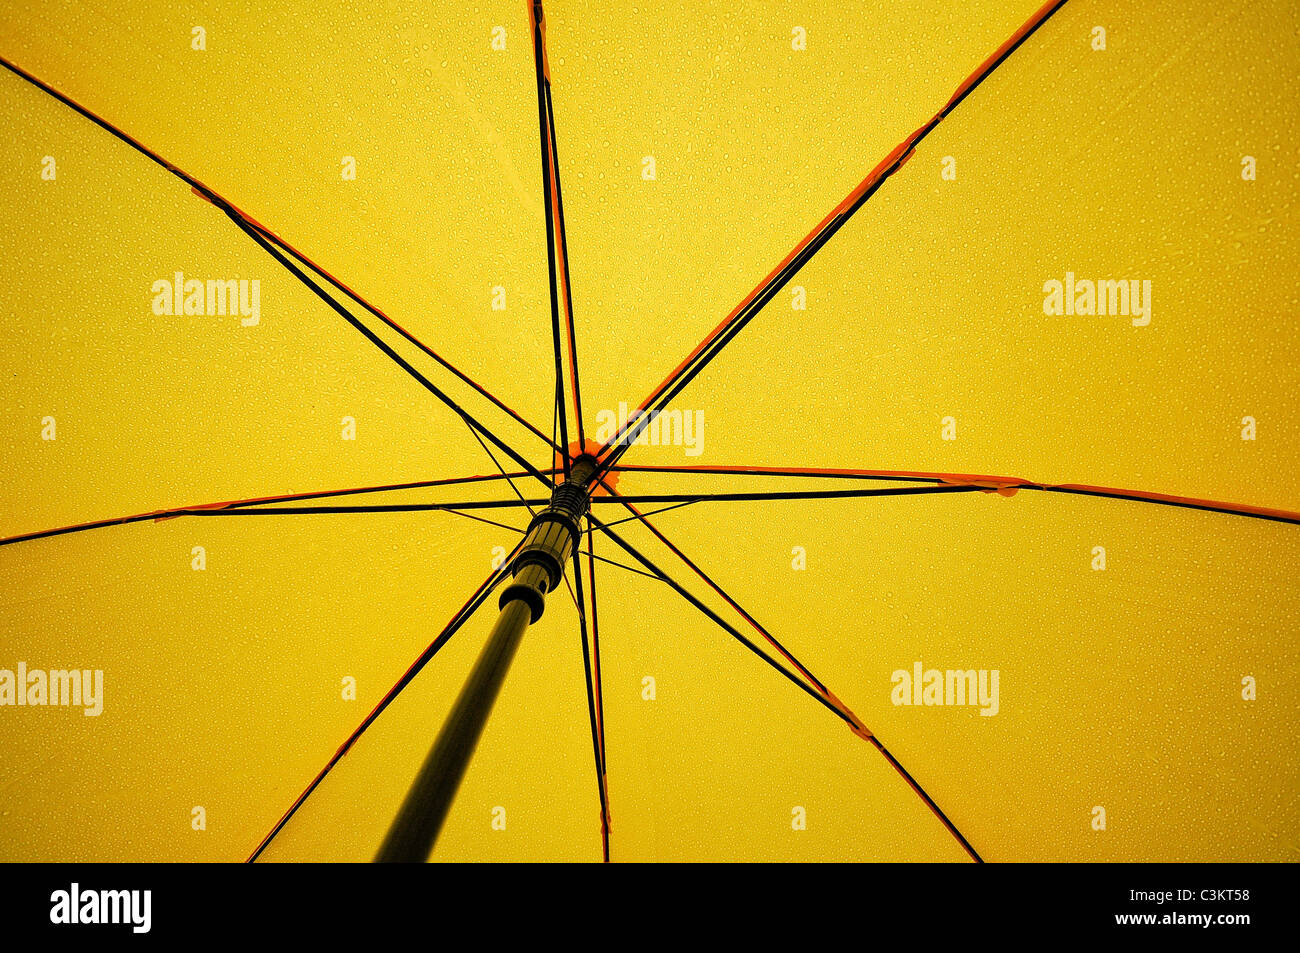 The under side of a yellow umbrella, with small raindrops already collected above - Stock Image